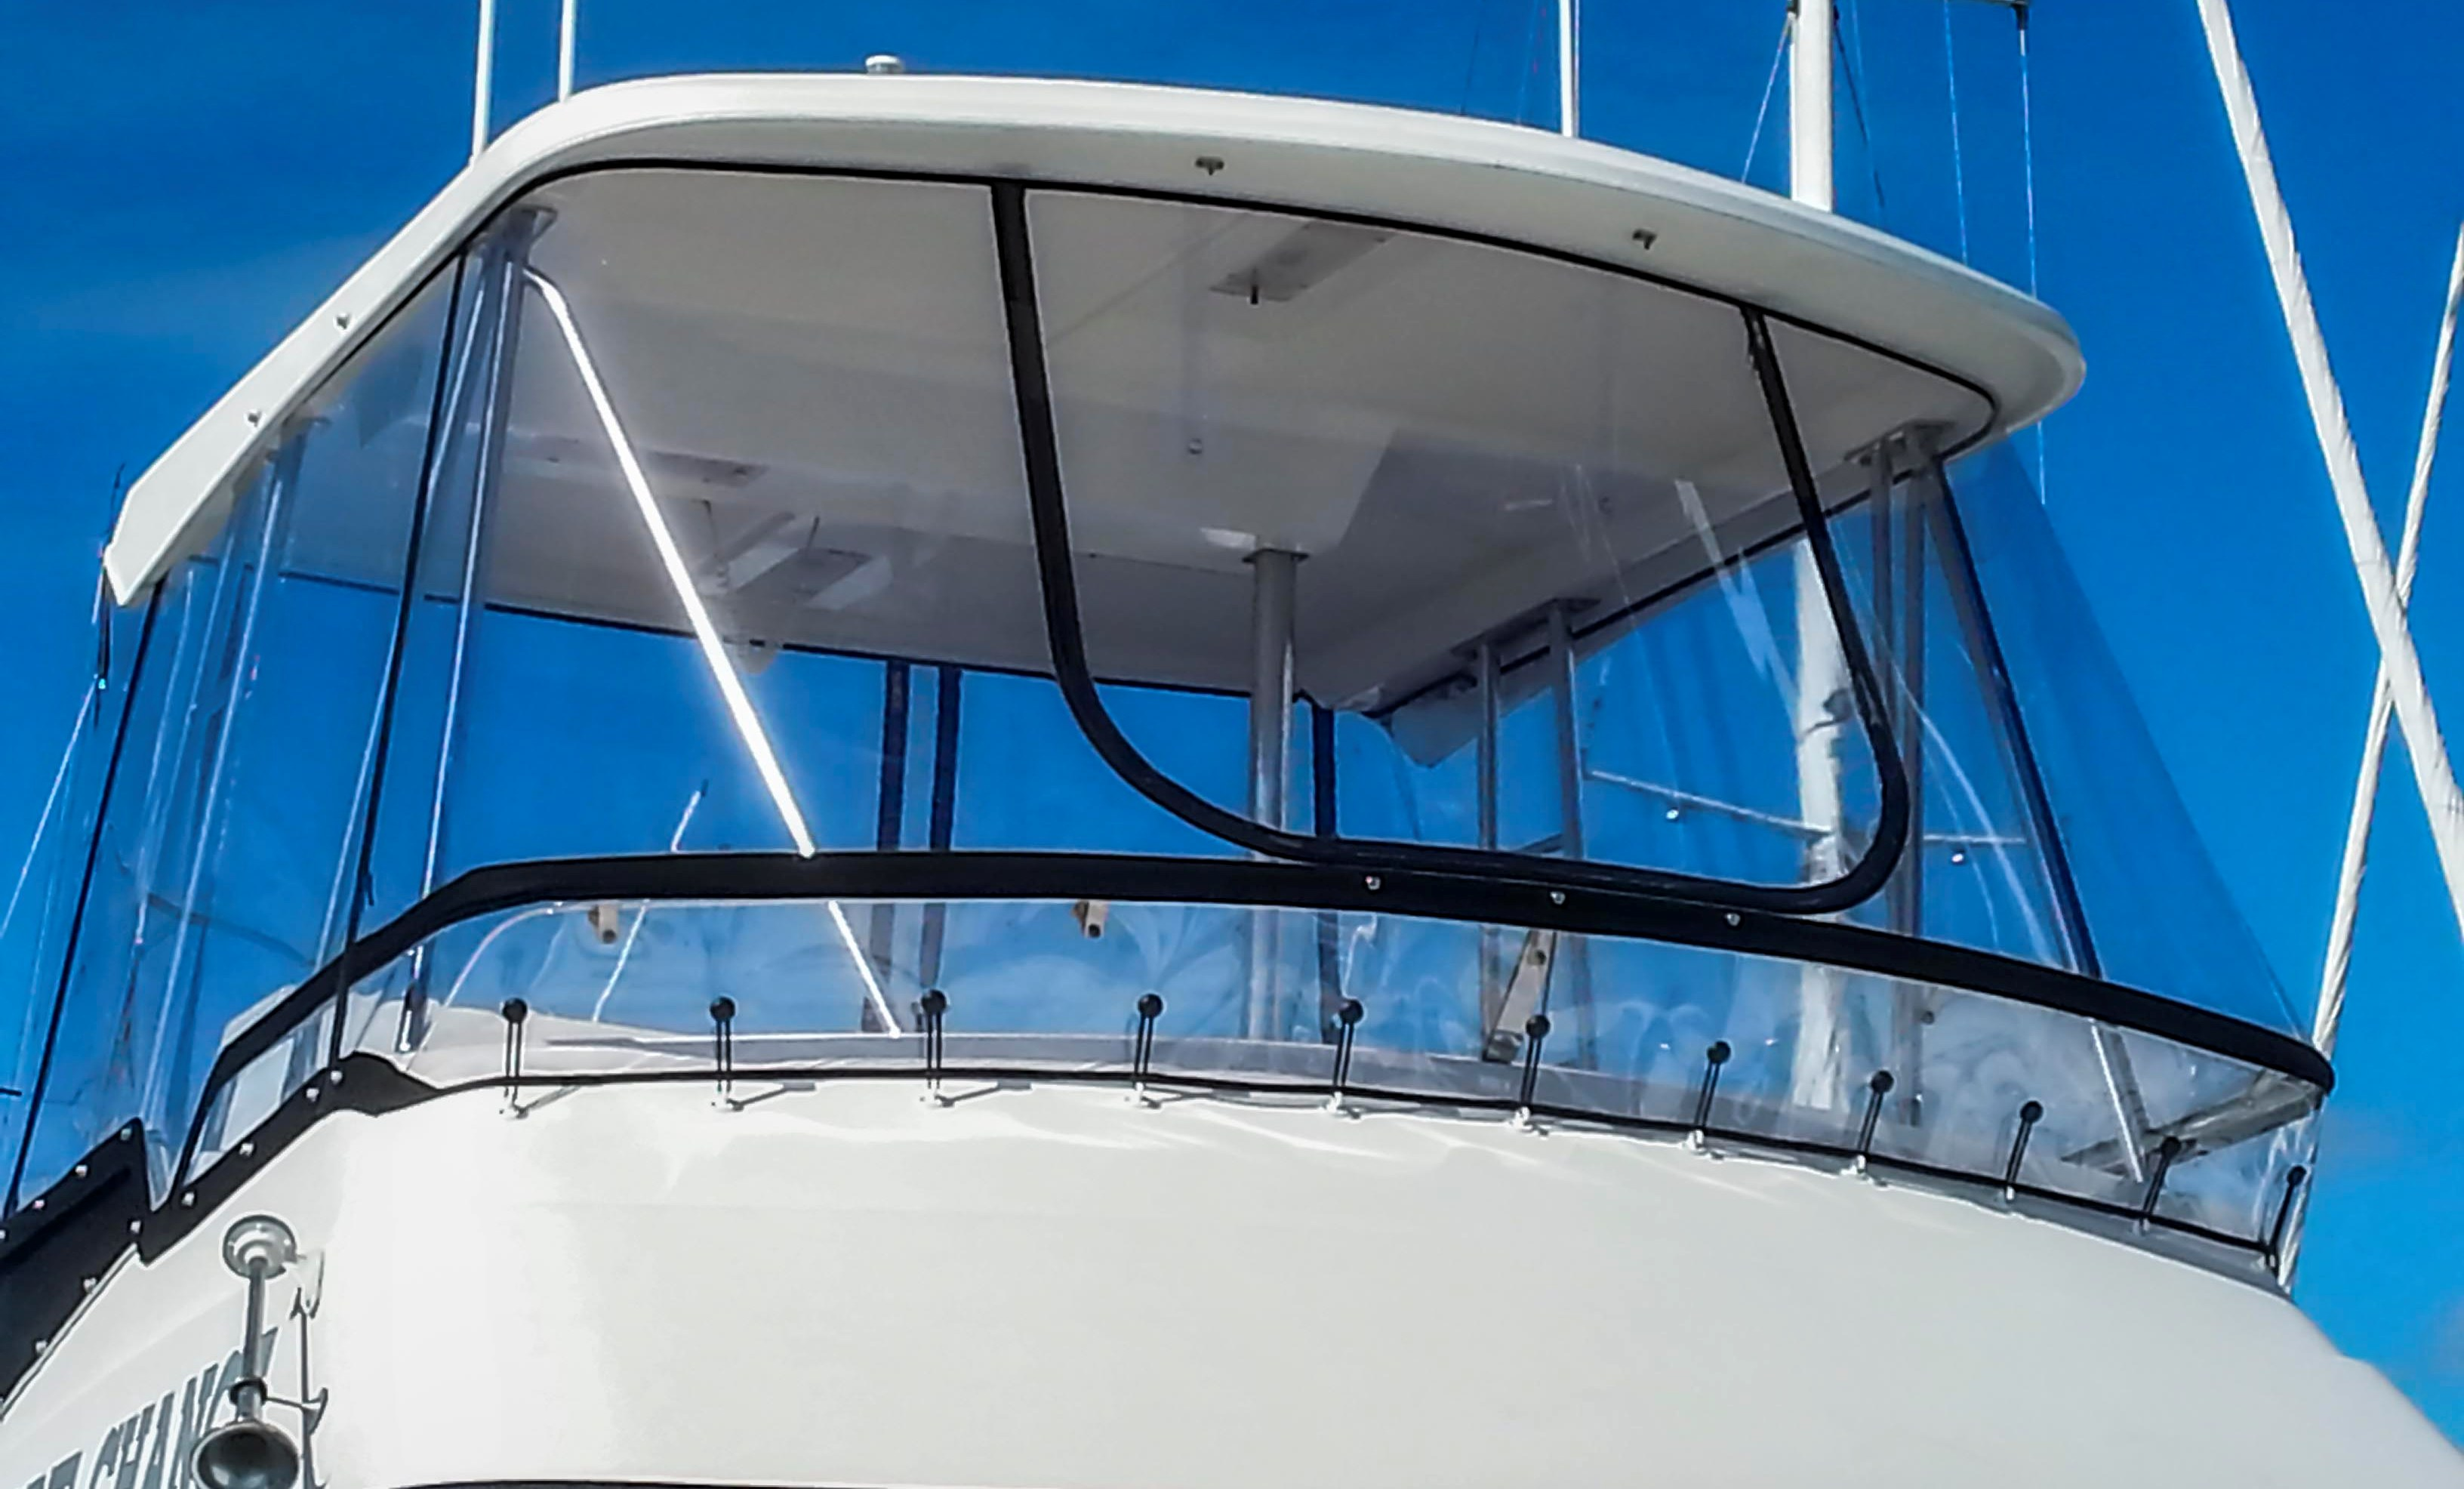 West Auckland Upholstery Boat Covers Clears And